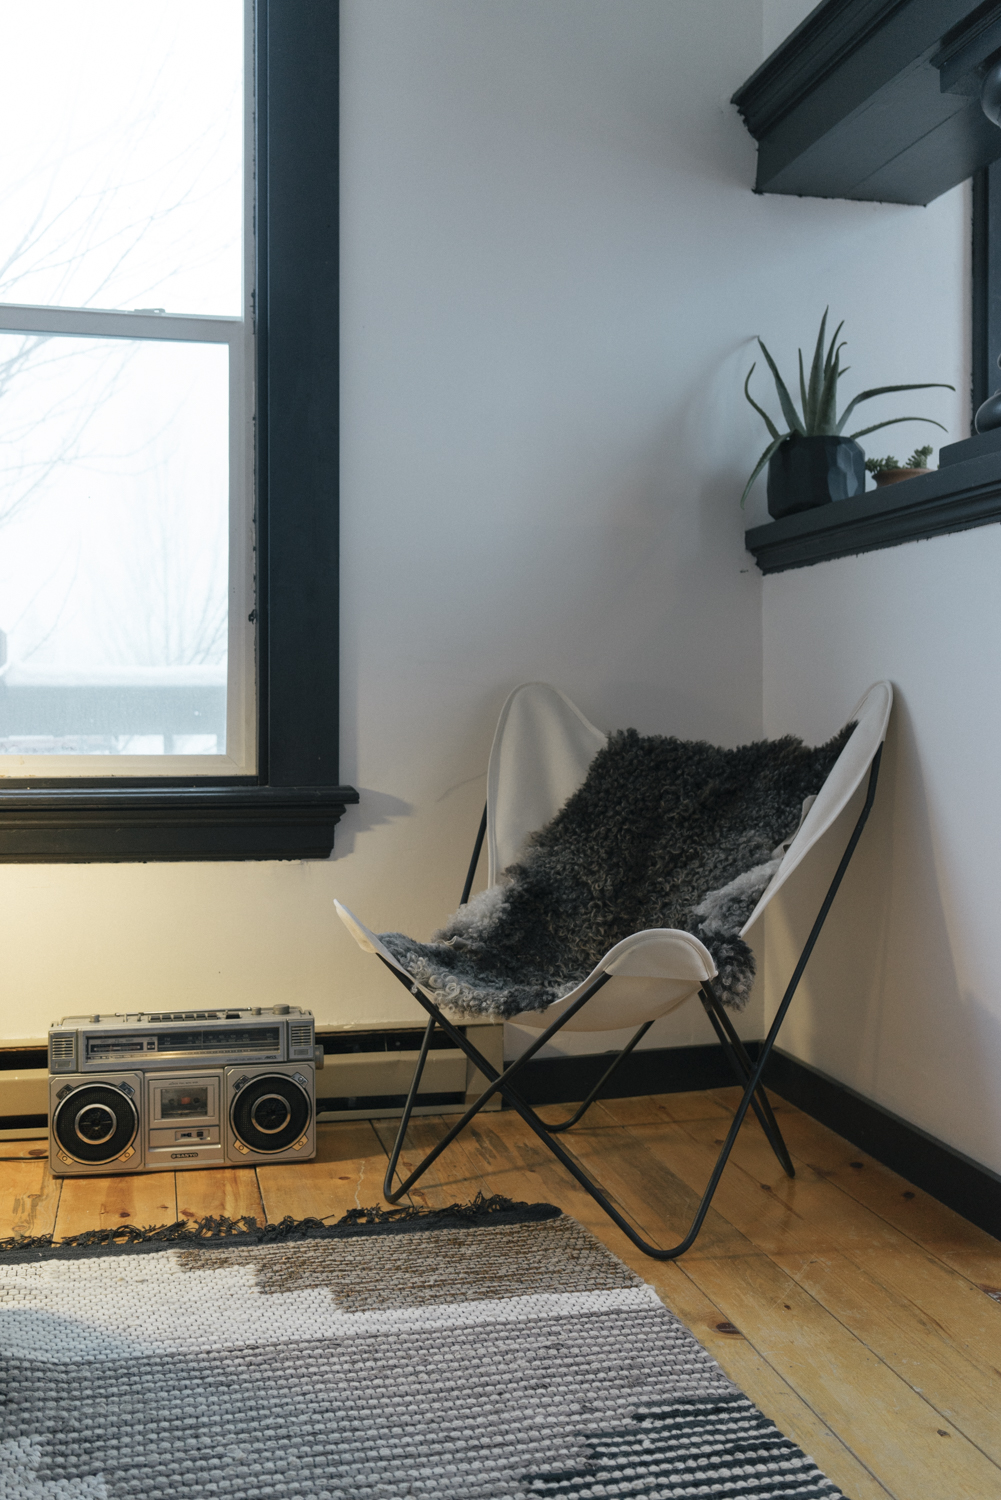 Snuggle up with some sheepskin and listen to jams from the tape collection in room two